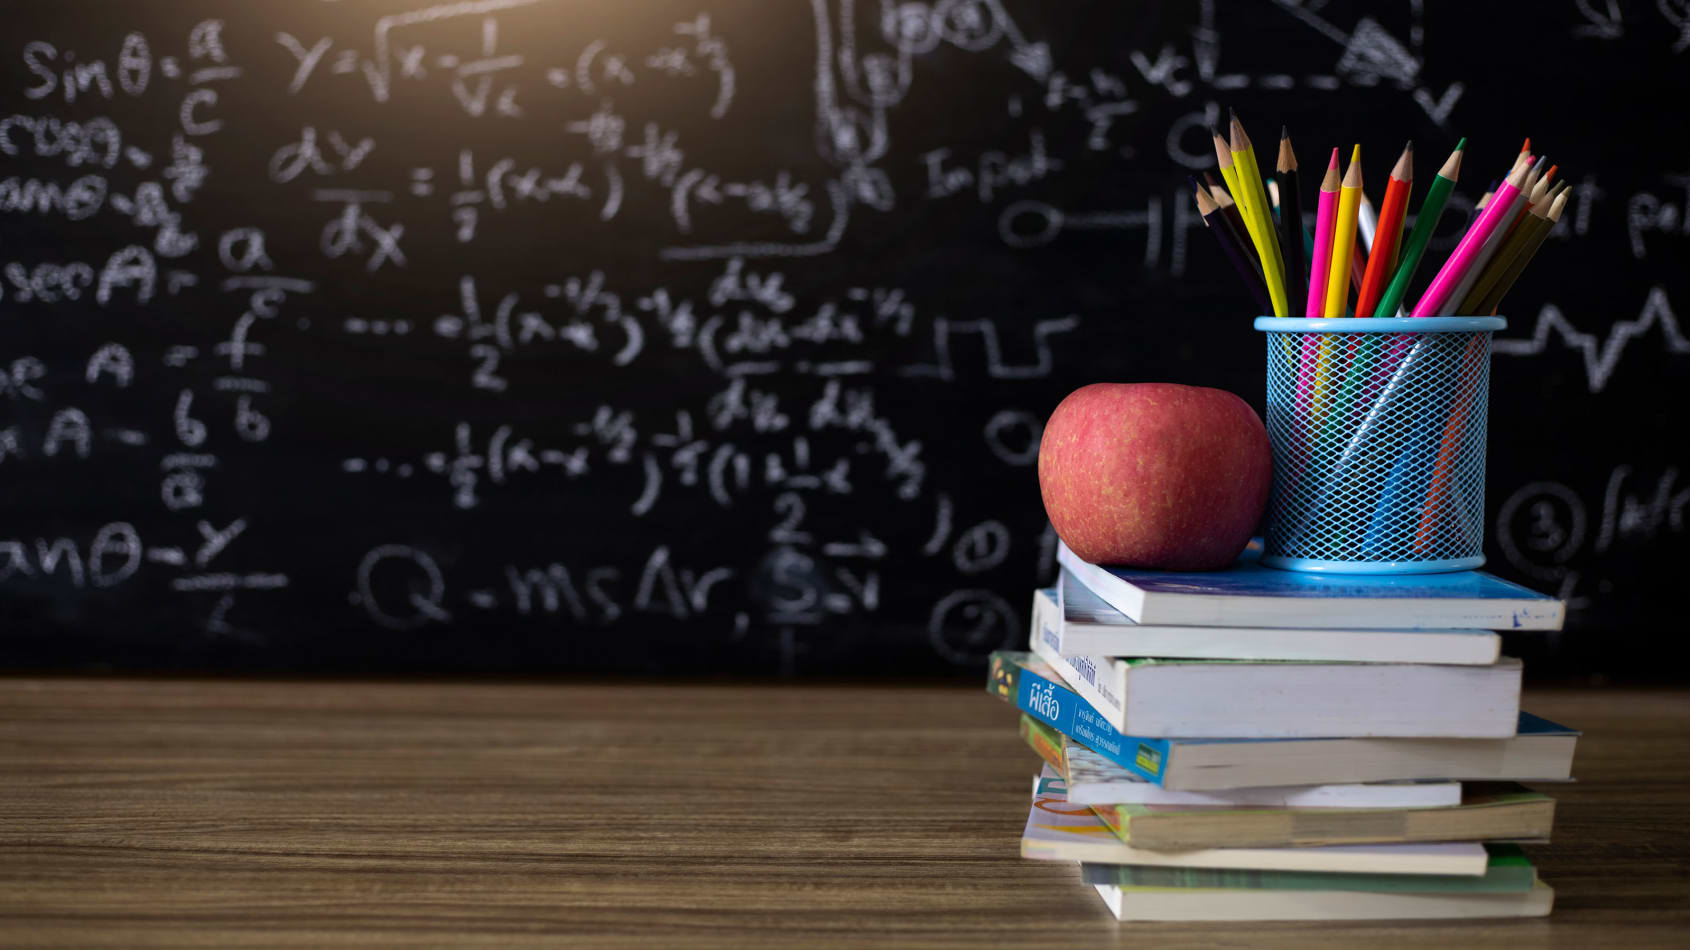 A stack of books and an apple on a desk in front of a blackboard.